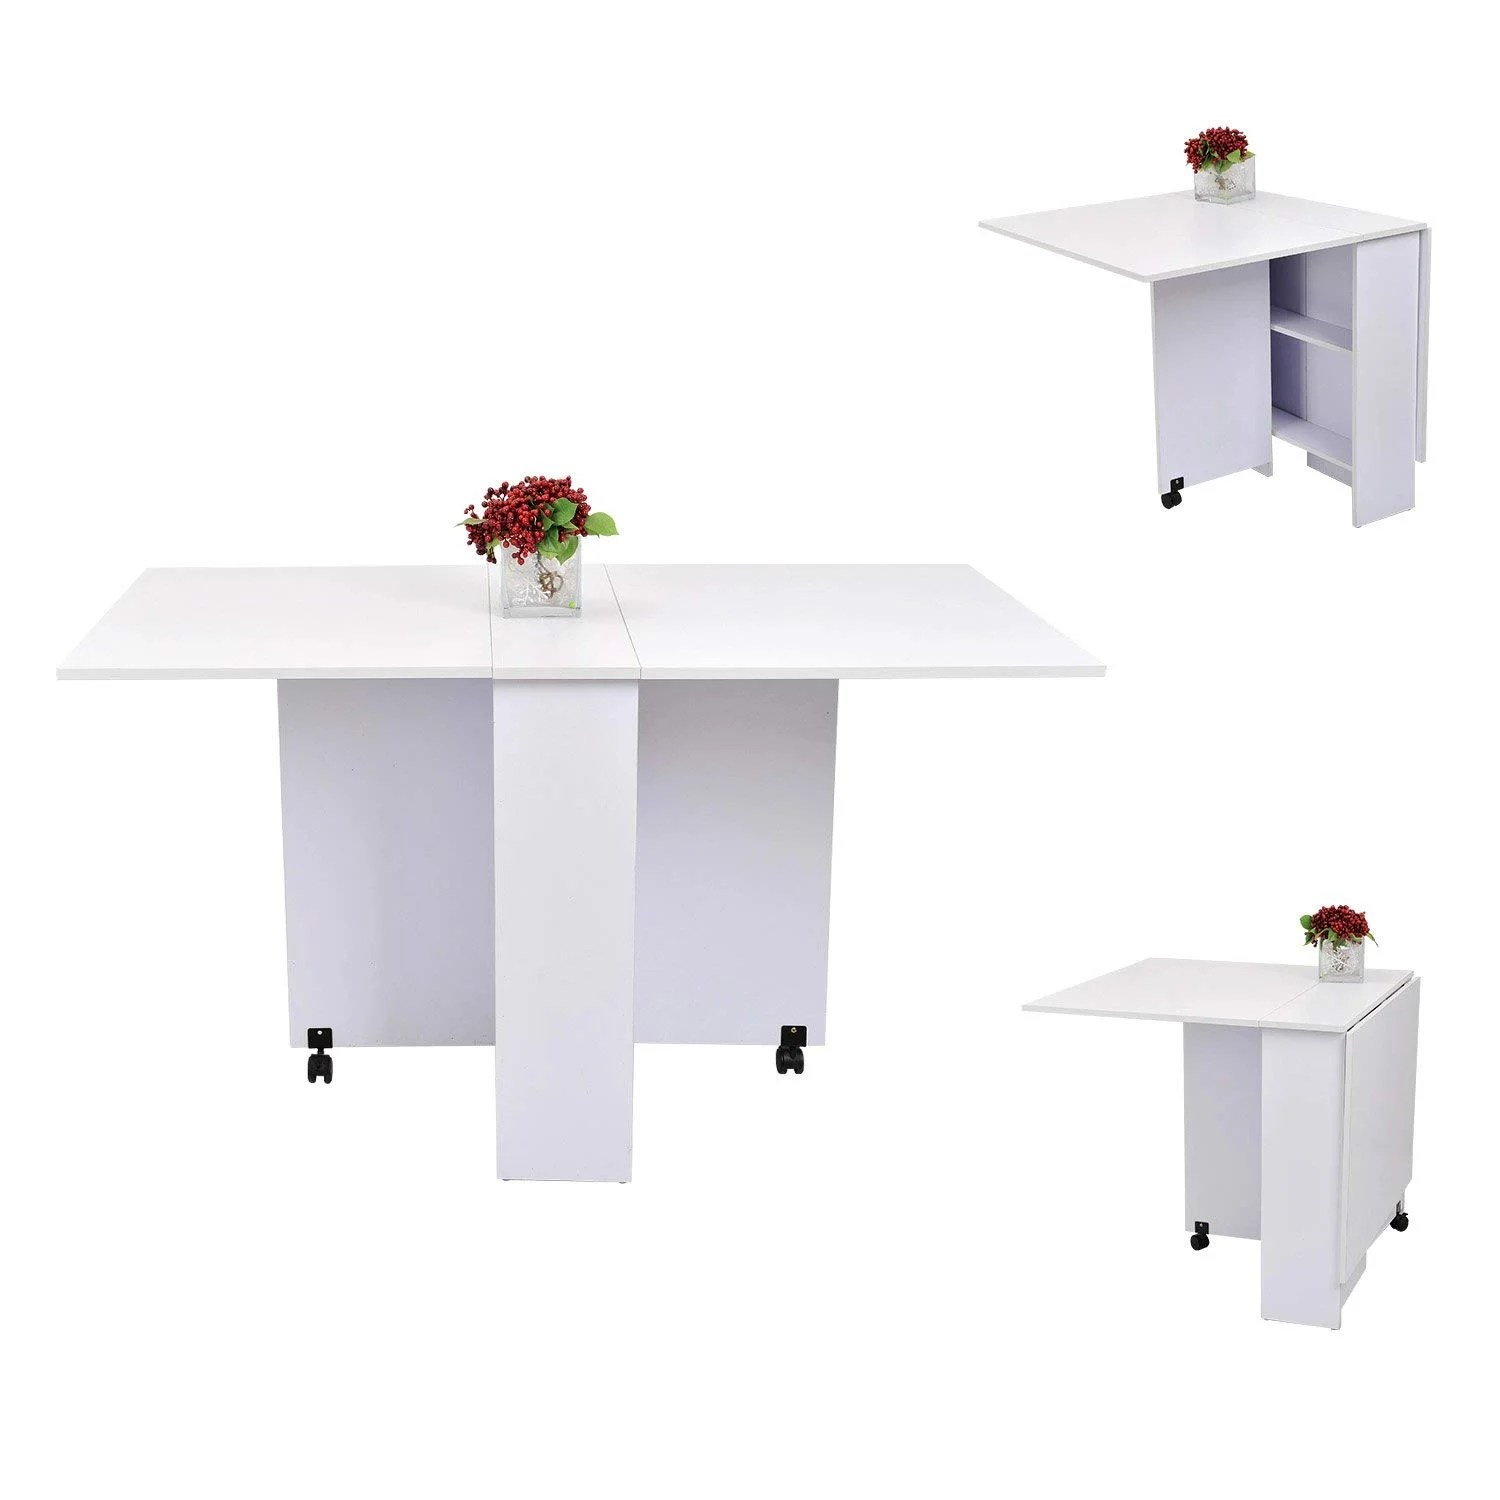 dining tables on sale wayfair co uk